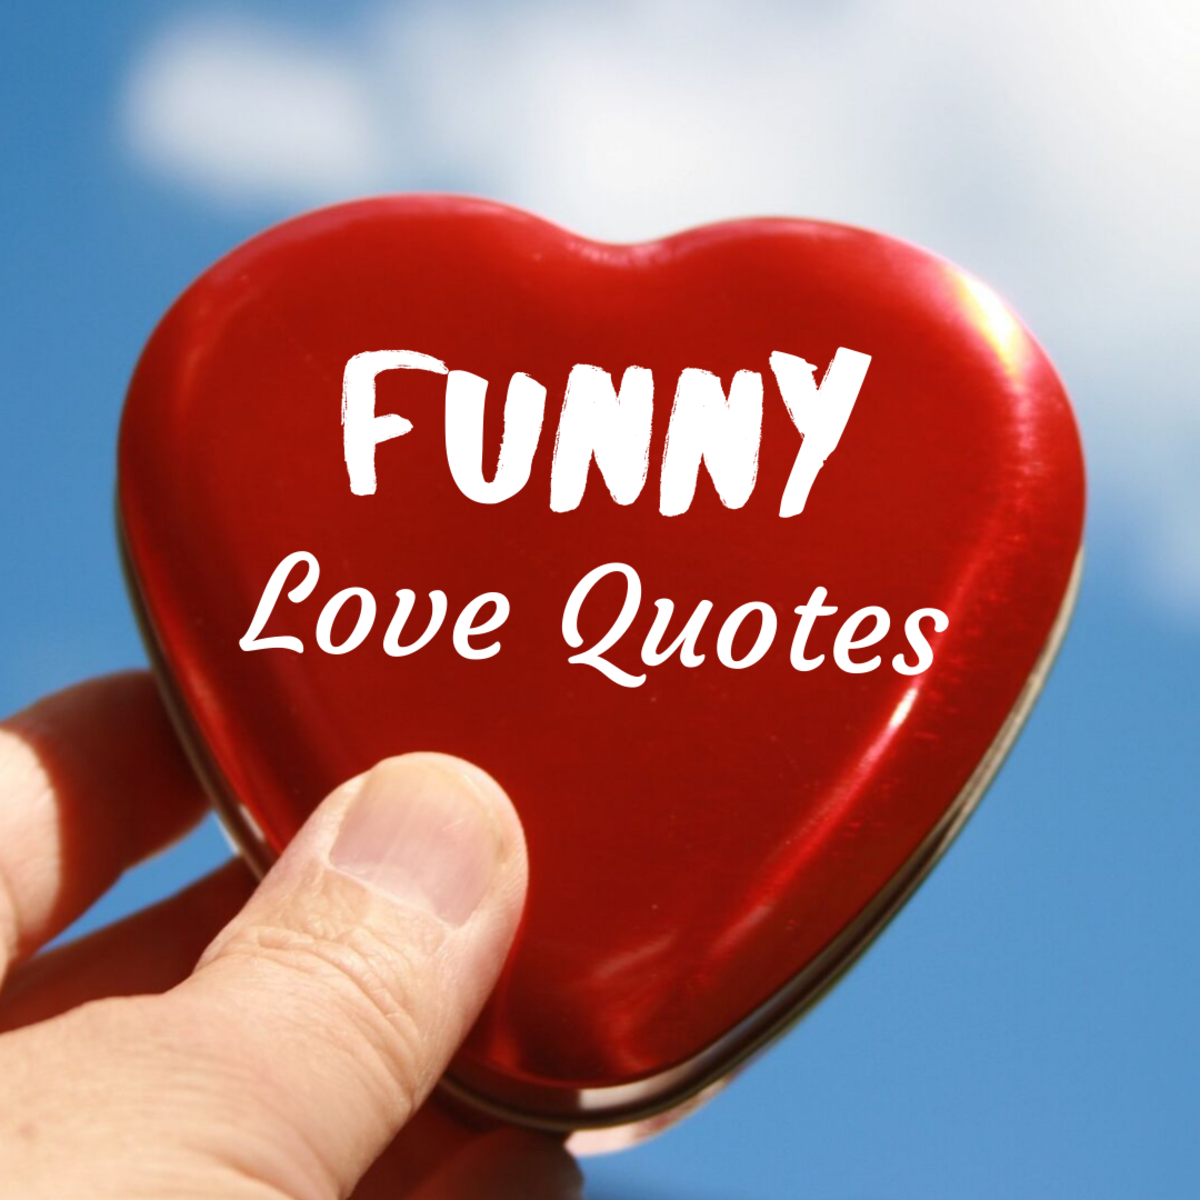 Read through some of the funniest quotes about love!